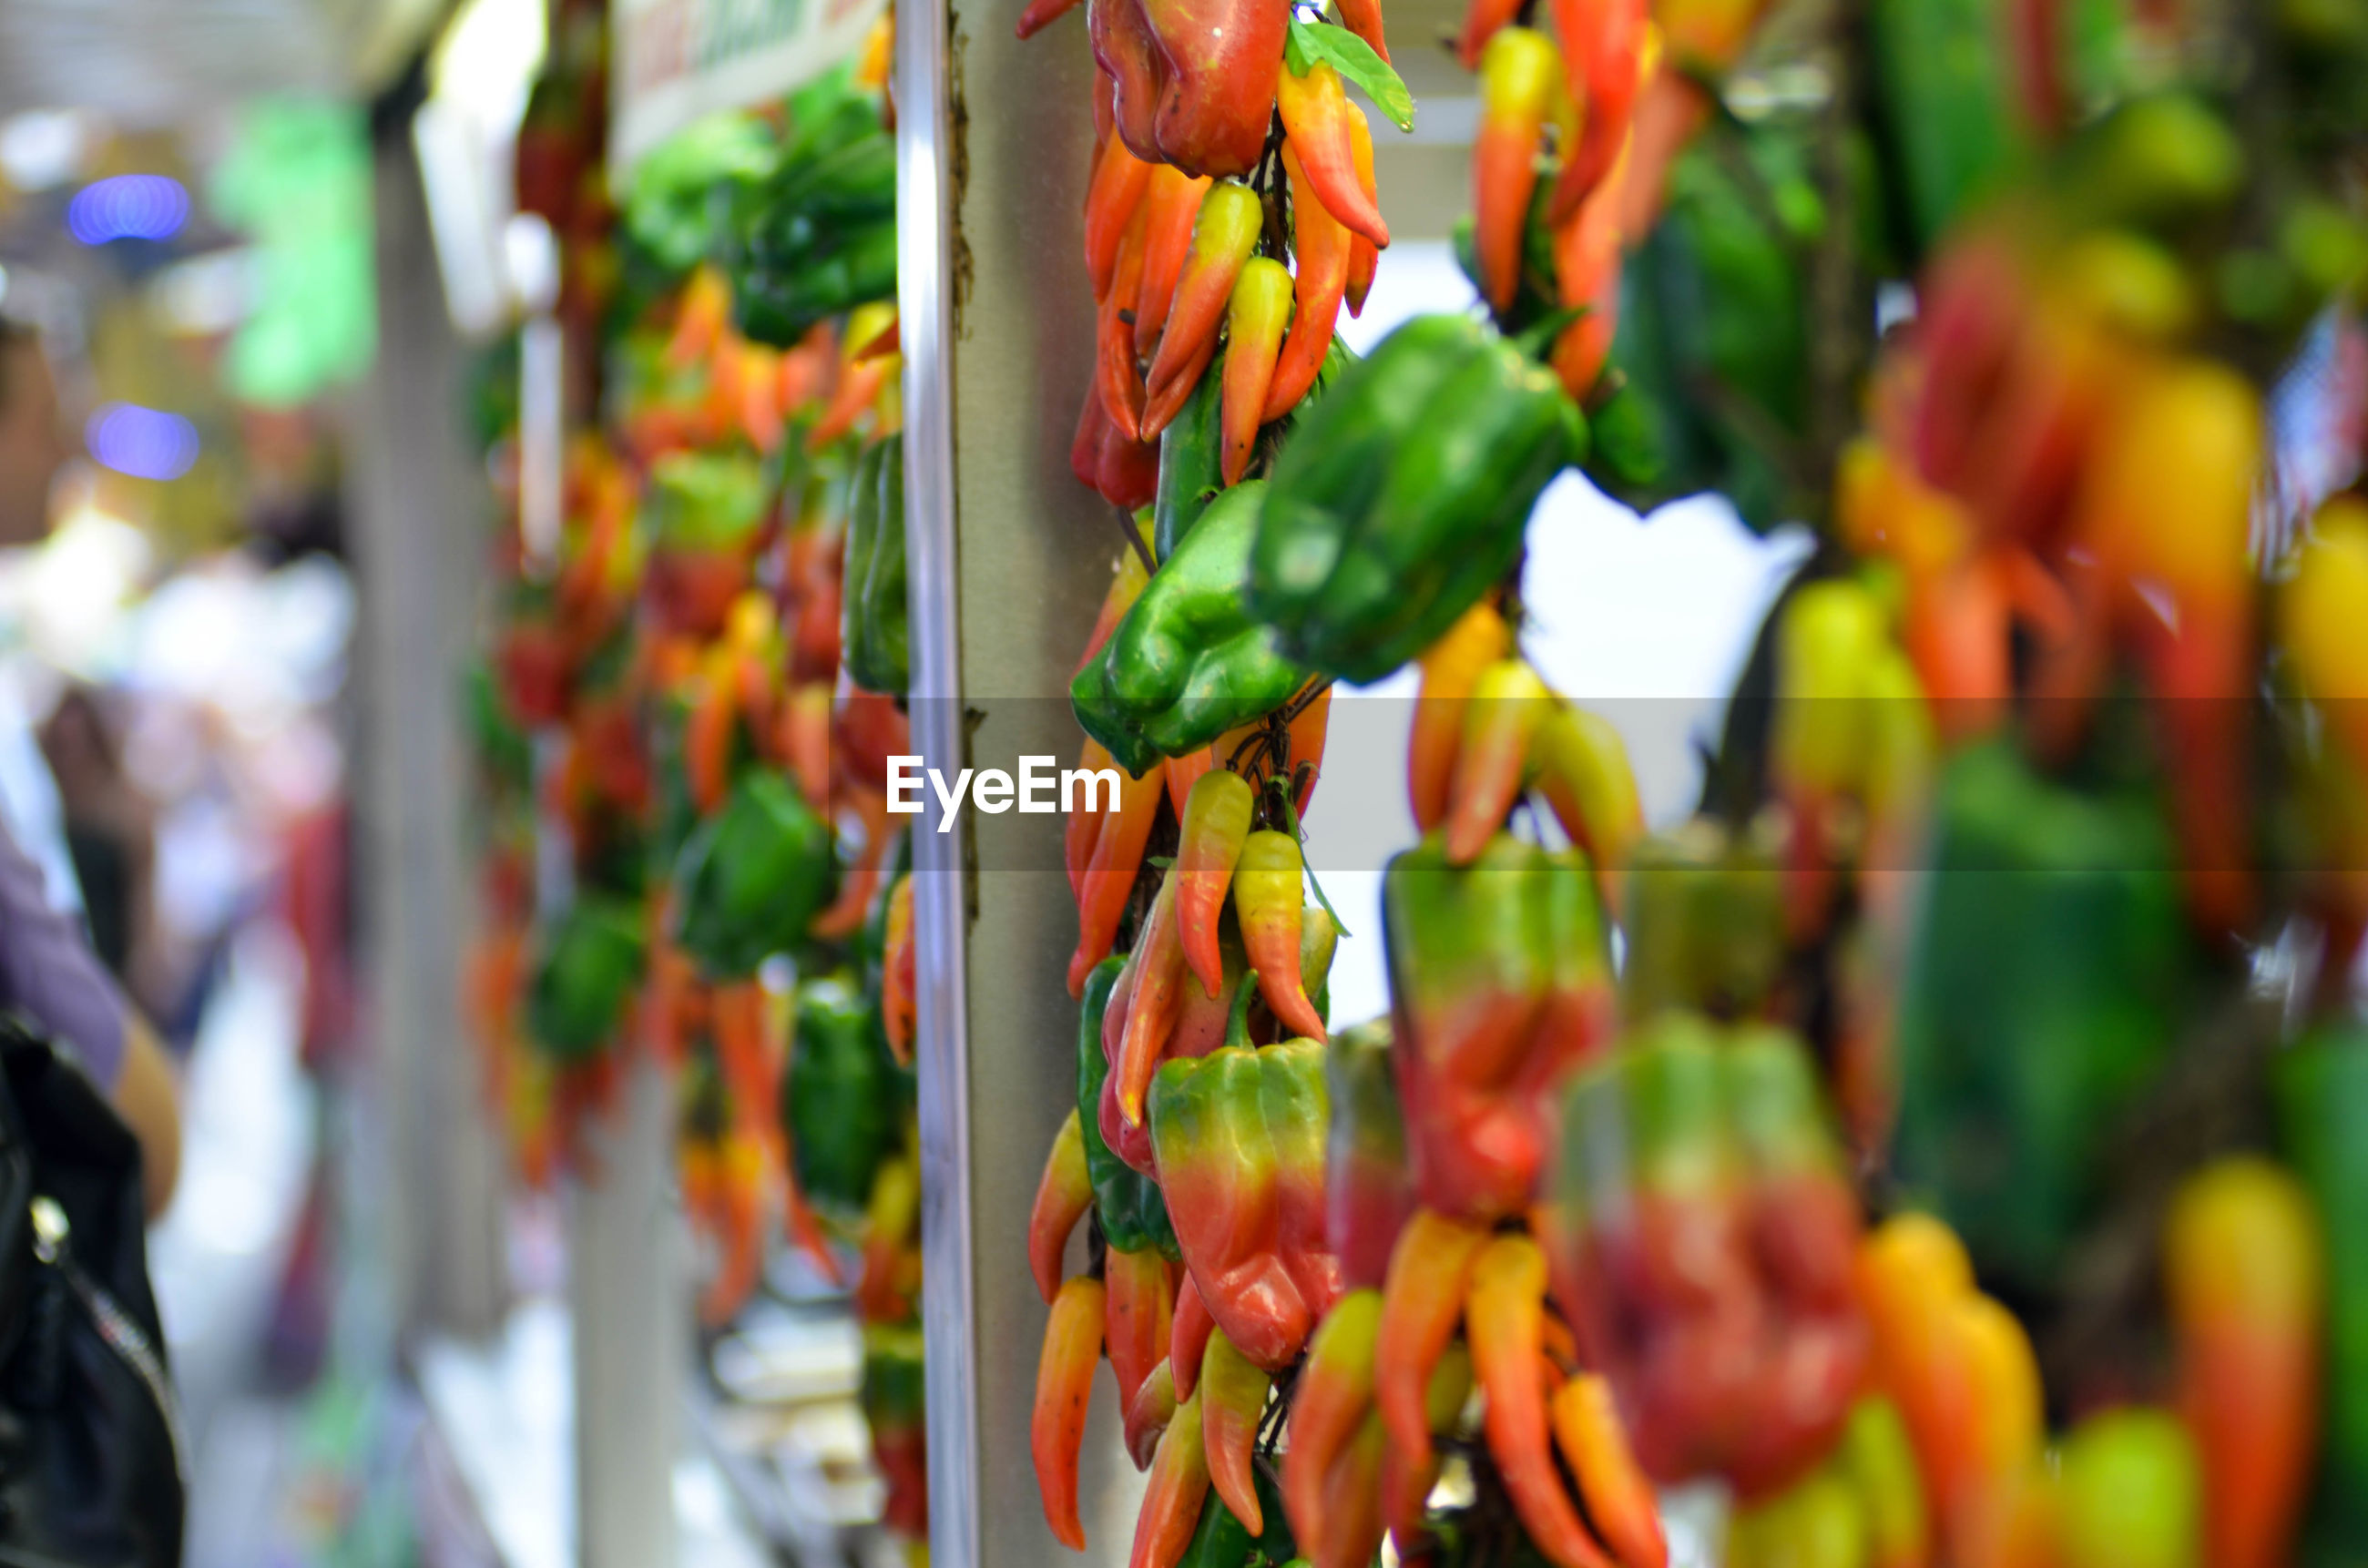 Close-up of vegetables during san gennaro in new york city.